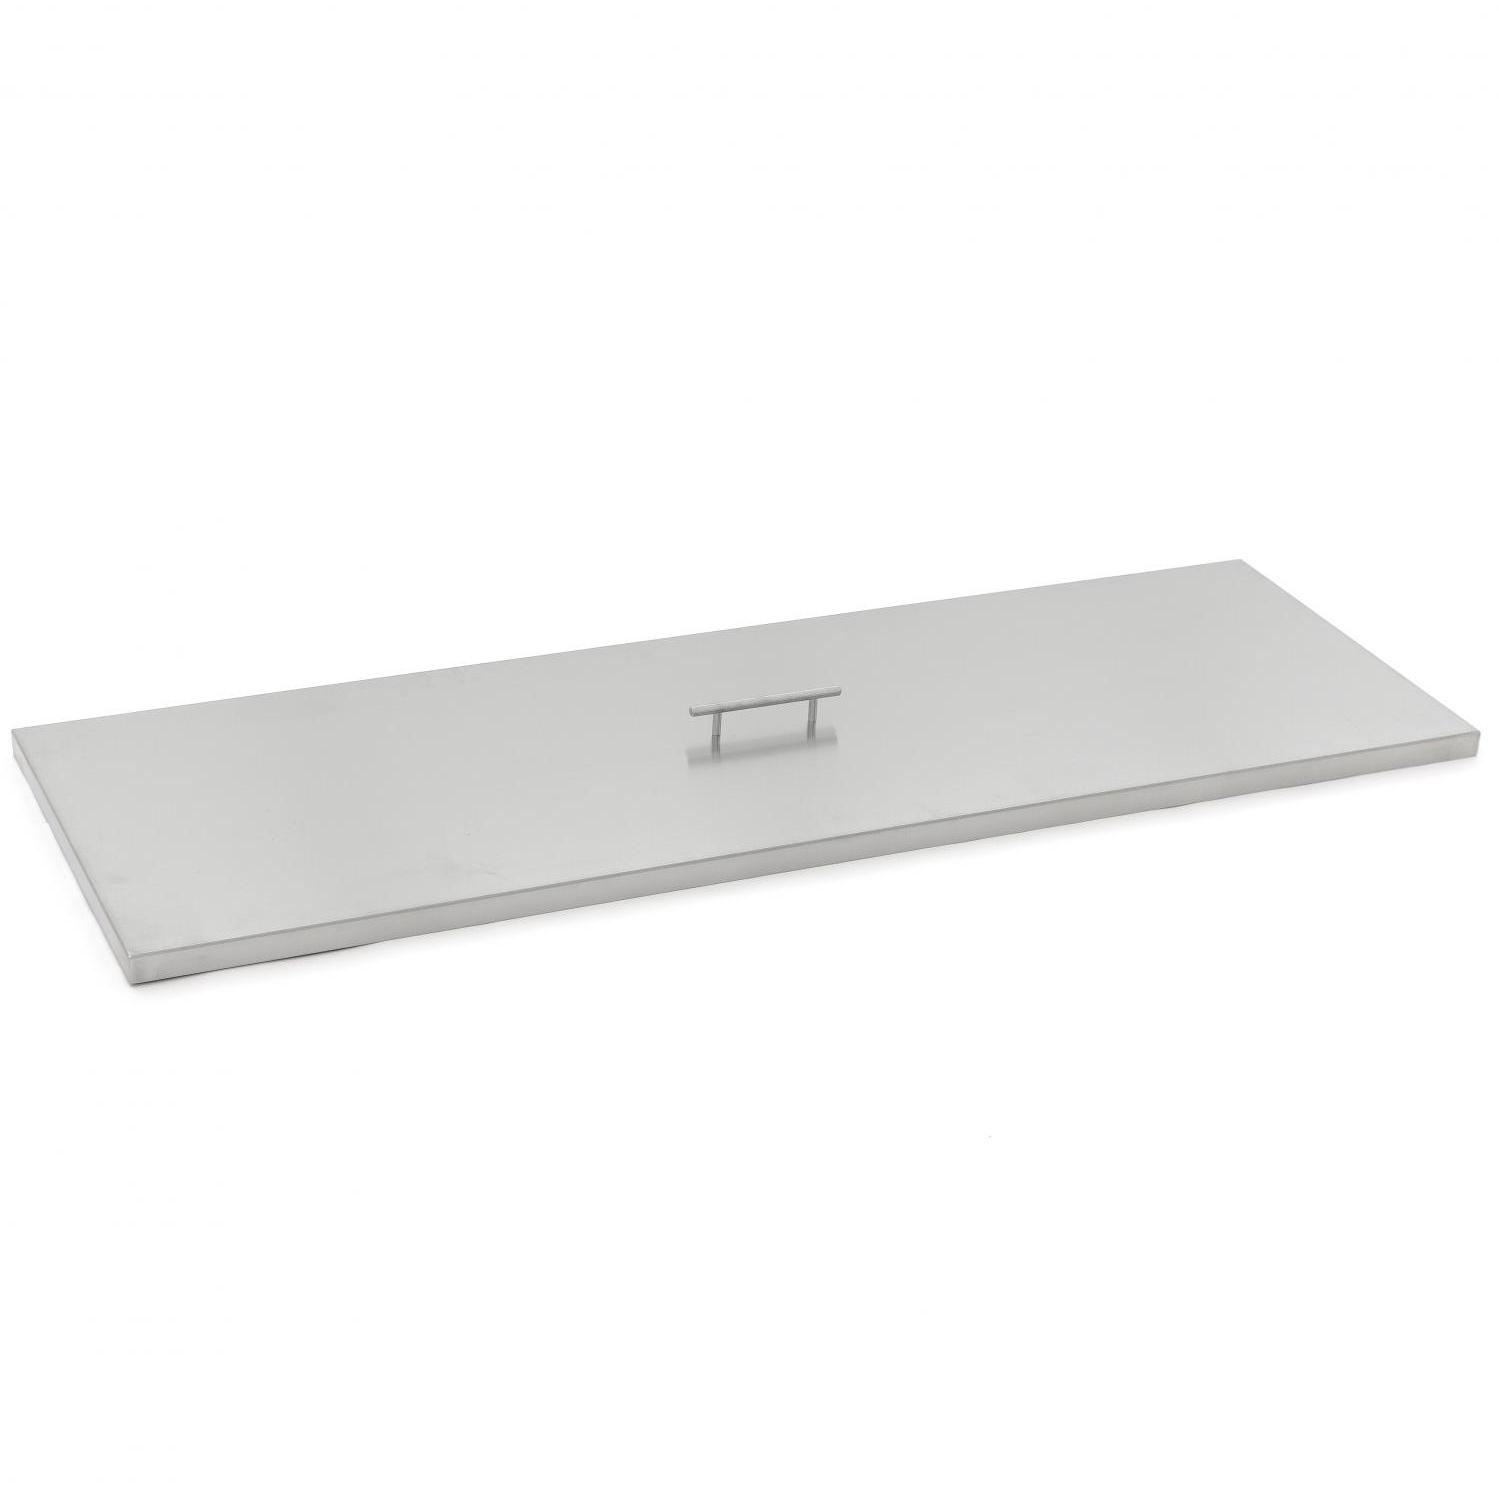 Lakeview 51 Stainless Steel Burner Lid Fits 48 Rectangular